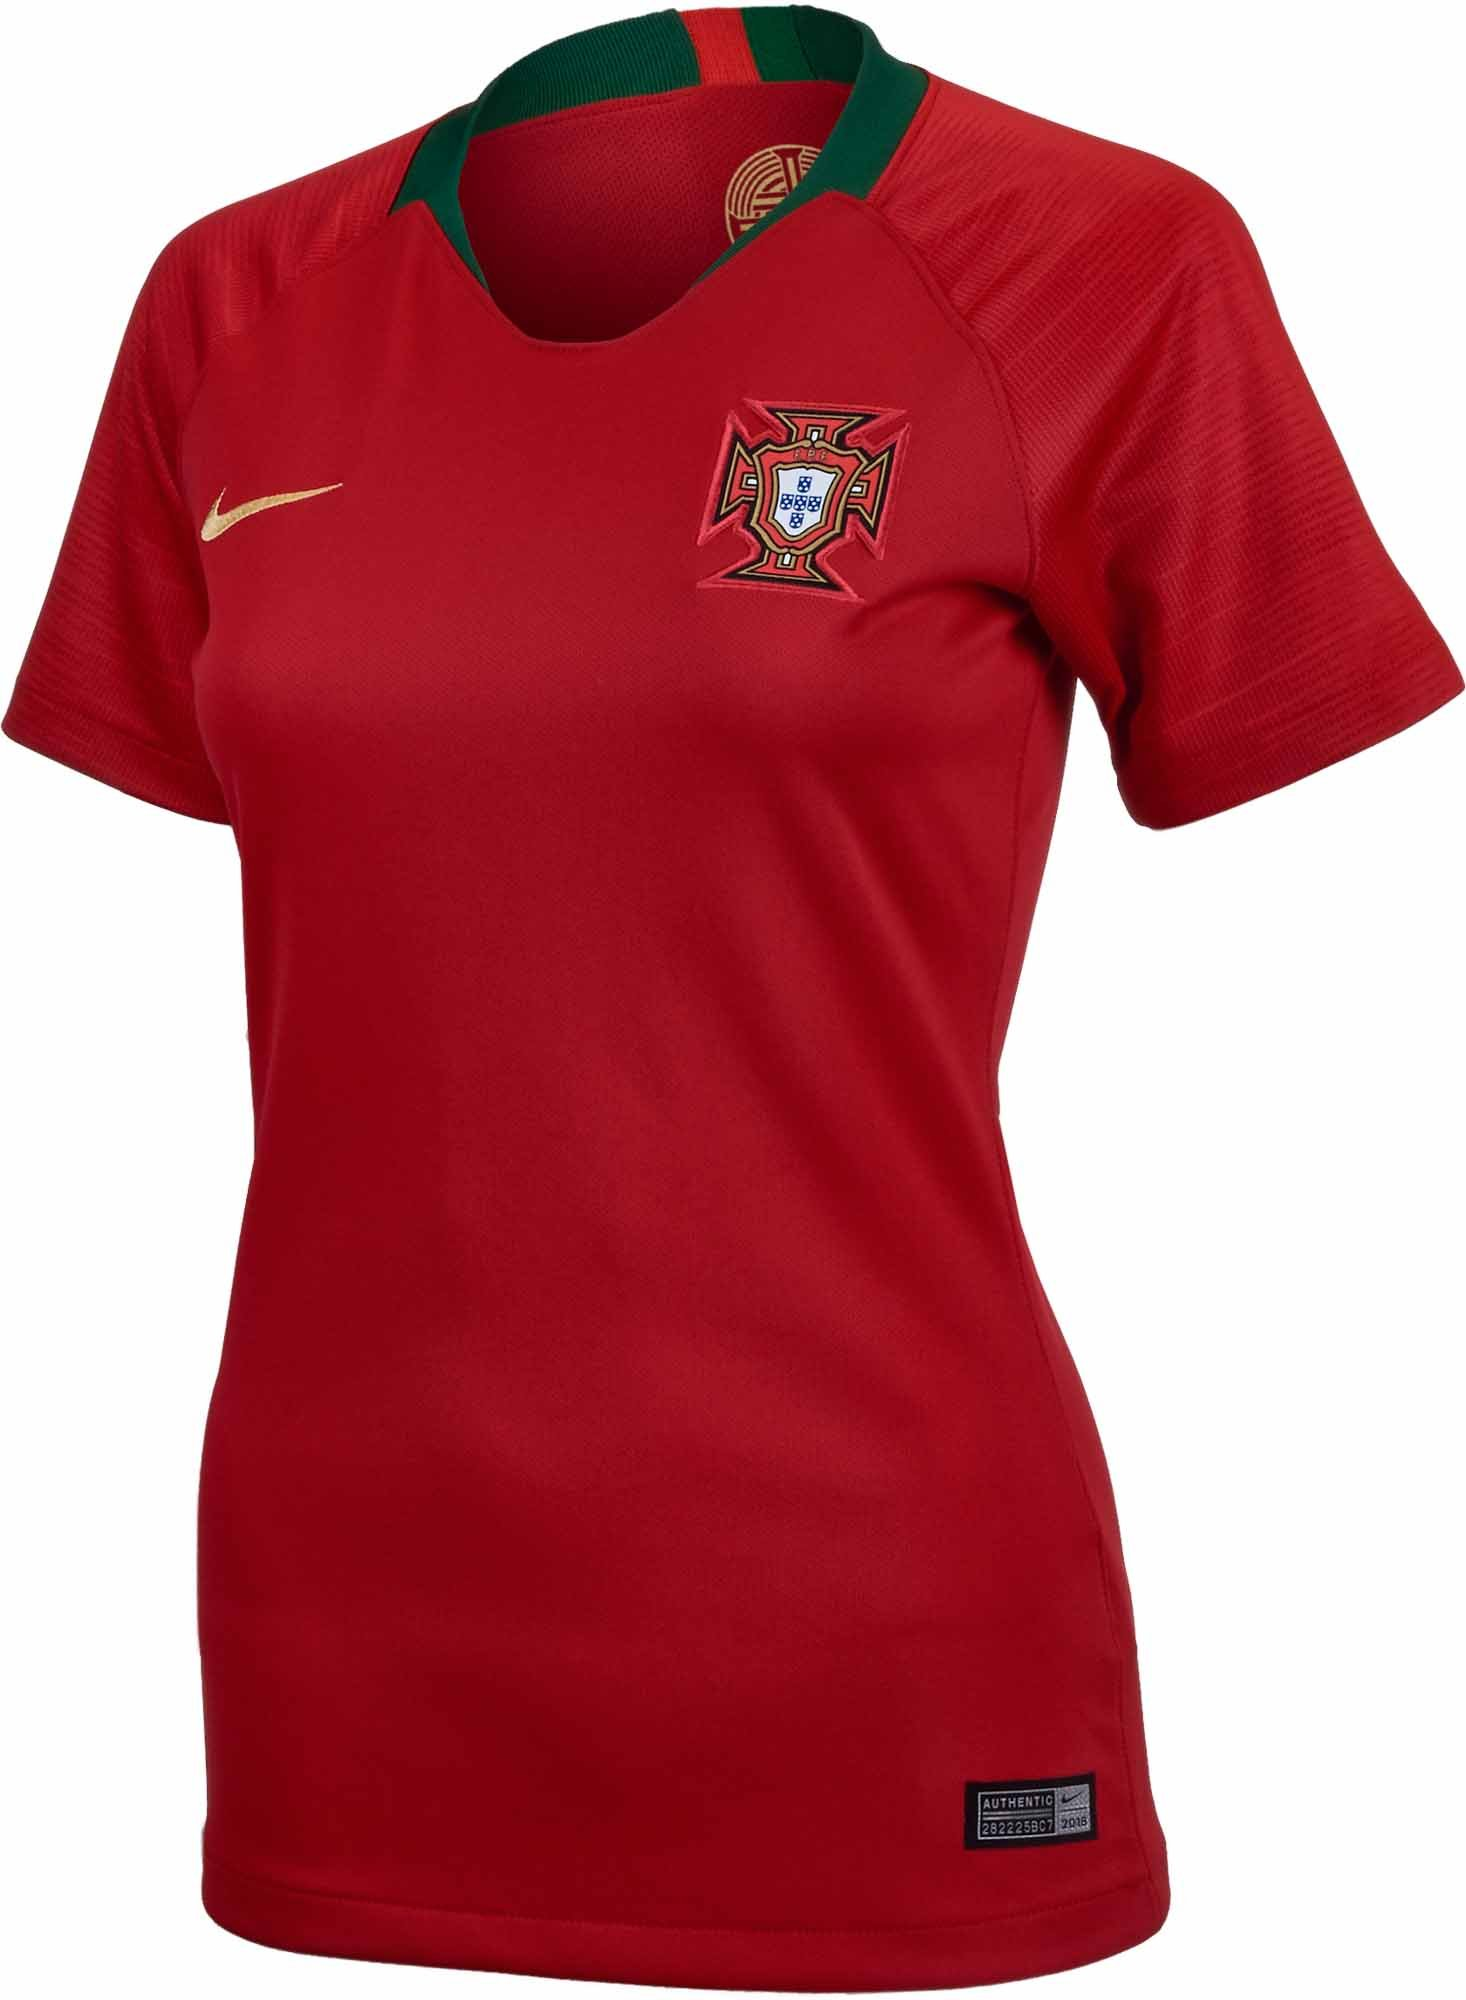 2018/19 Womens Nike Portugal Home Jersey - Soccer Master